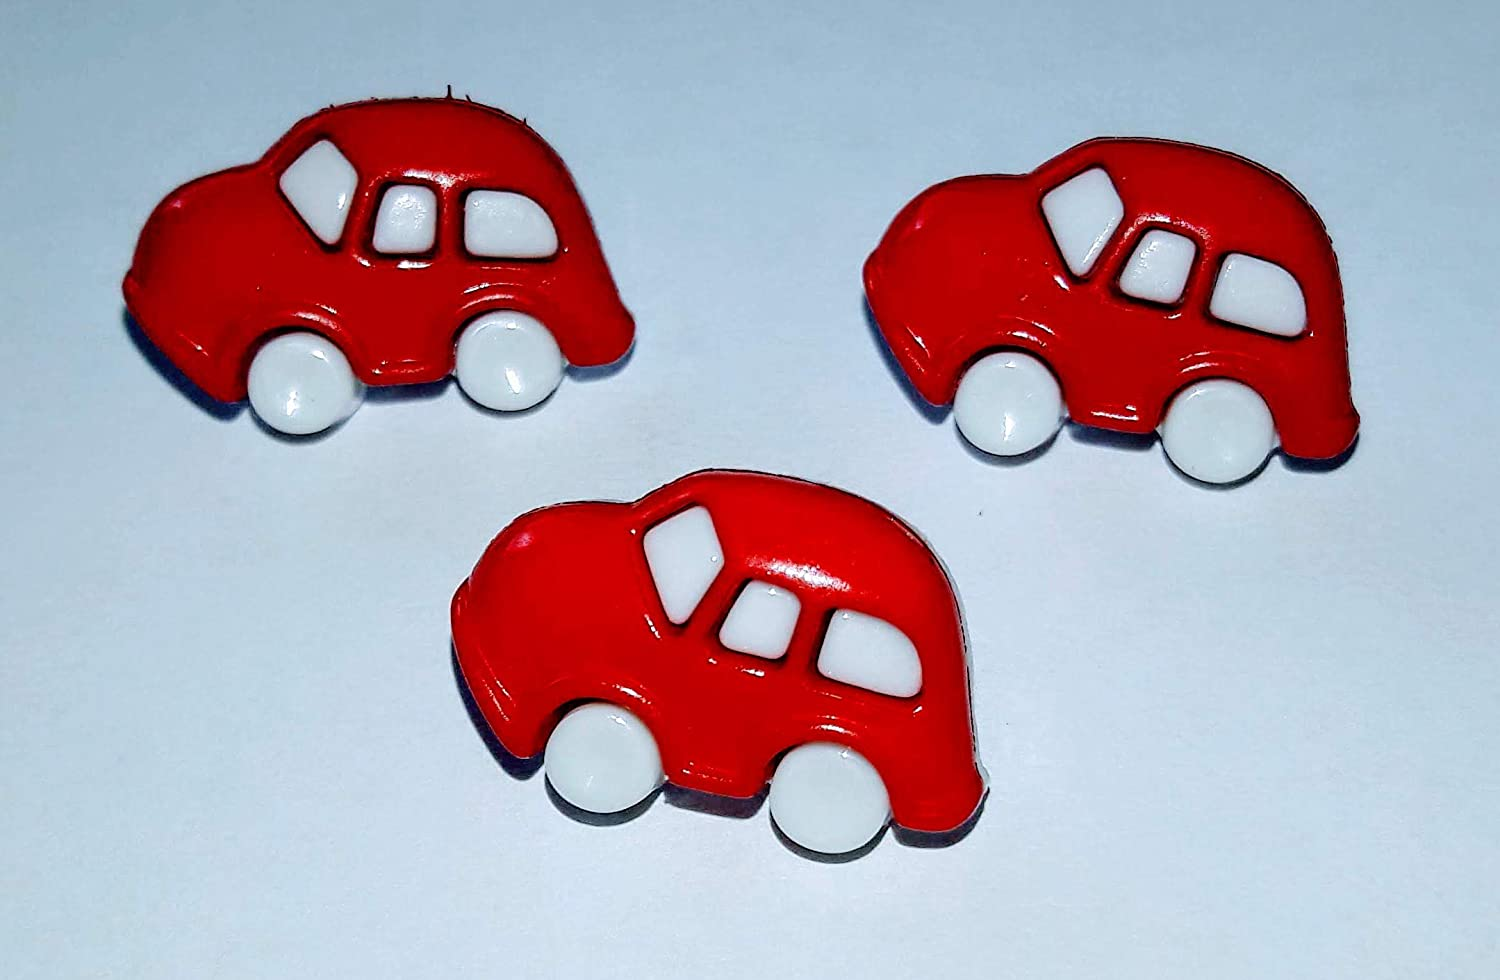 10 X Toy Car Buttons Red & White Or Blue & White 20mm X 12mm Shank On Back (Royal blue) Always Knitting and Sewing